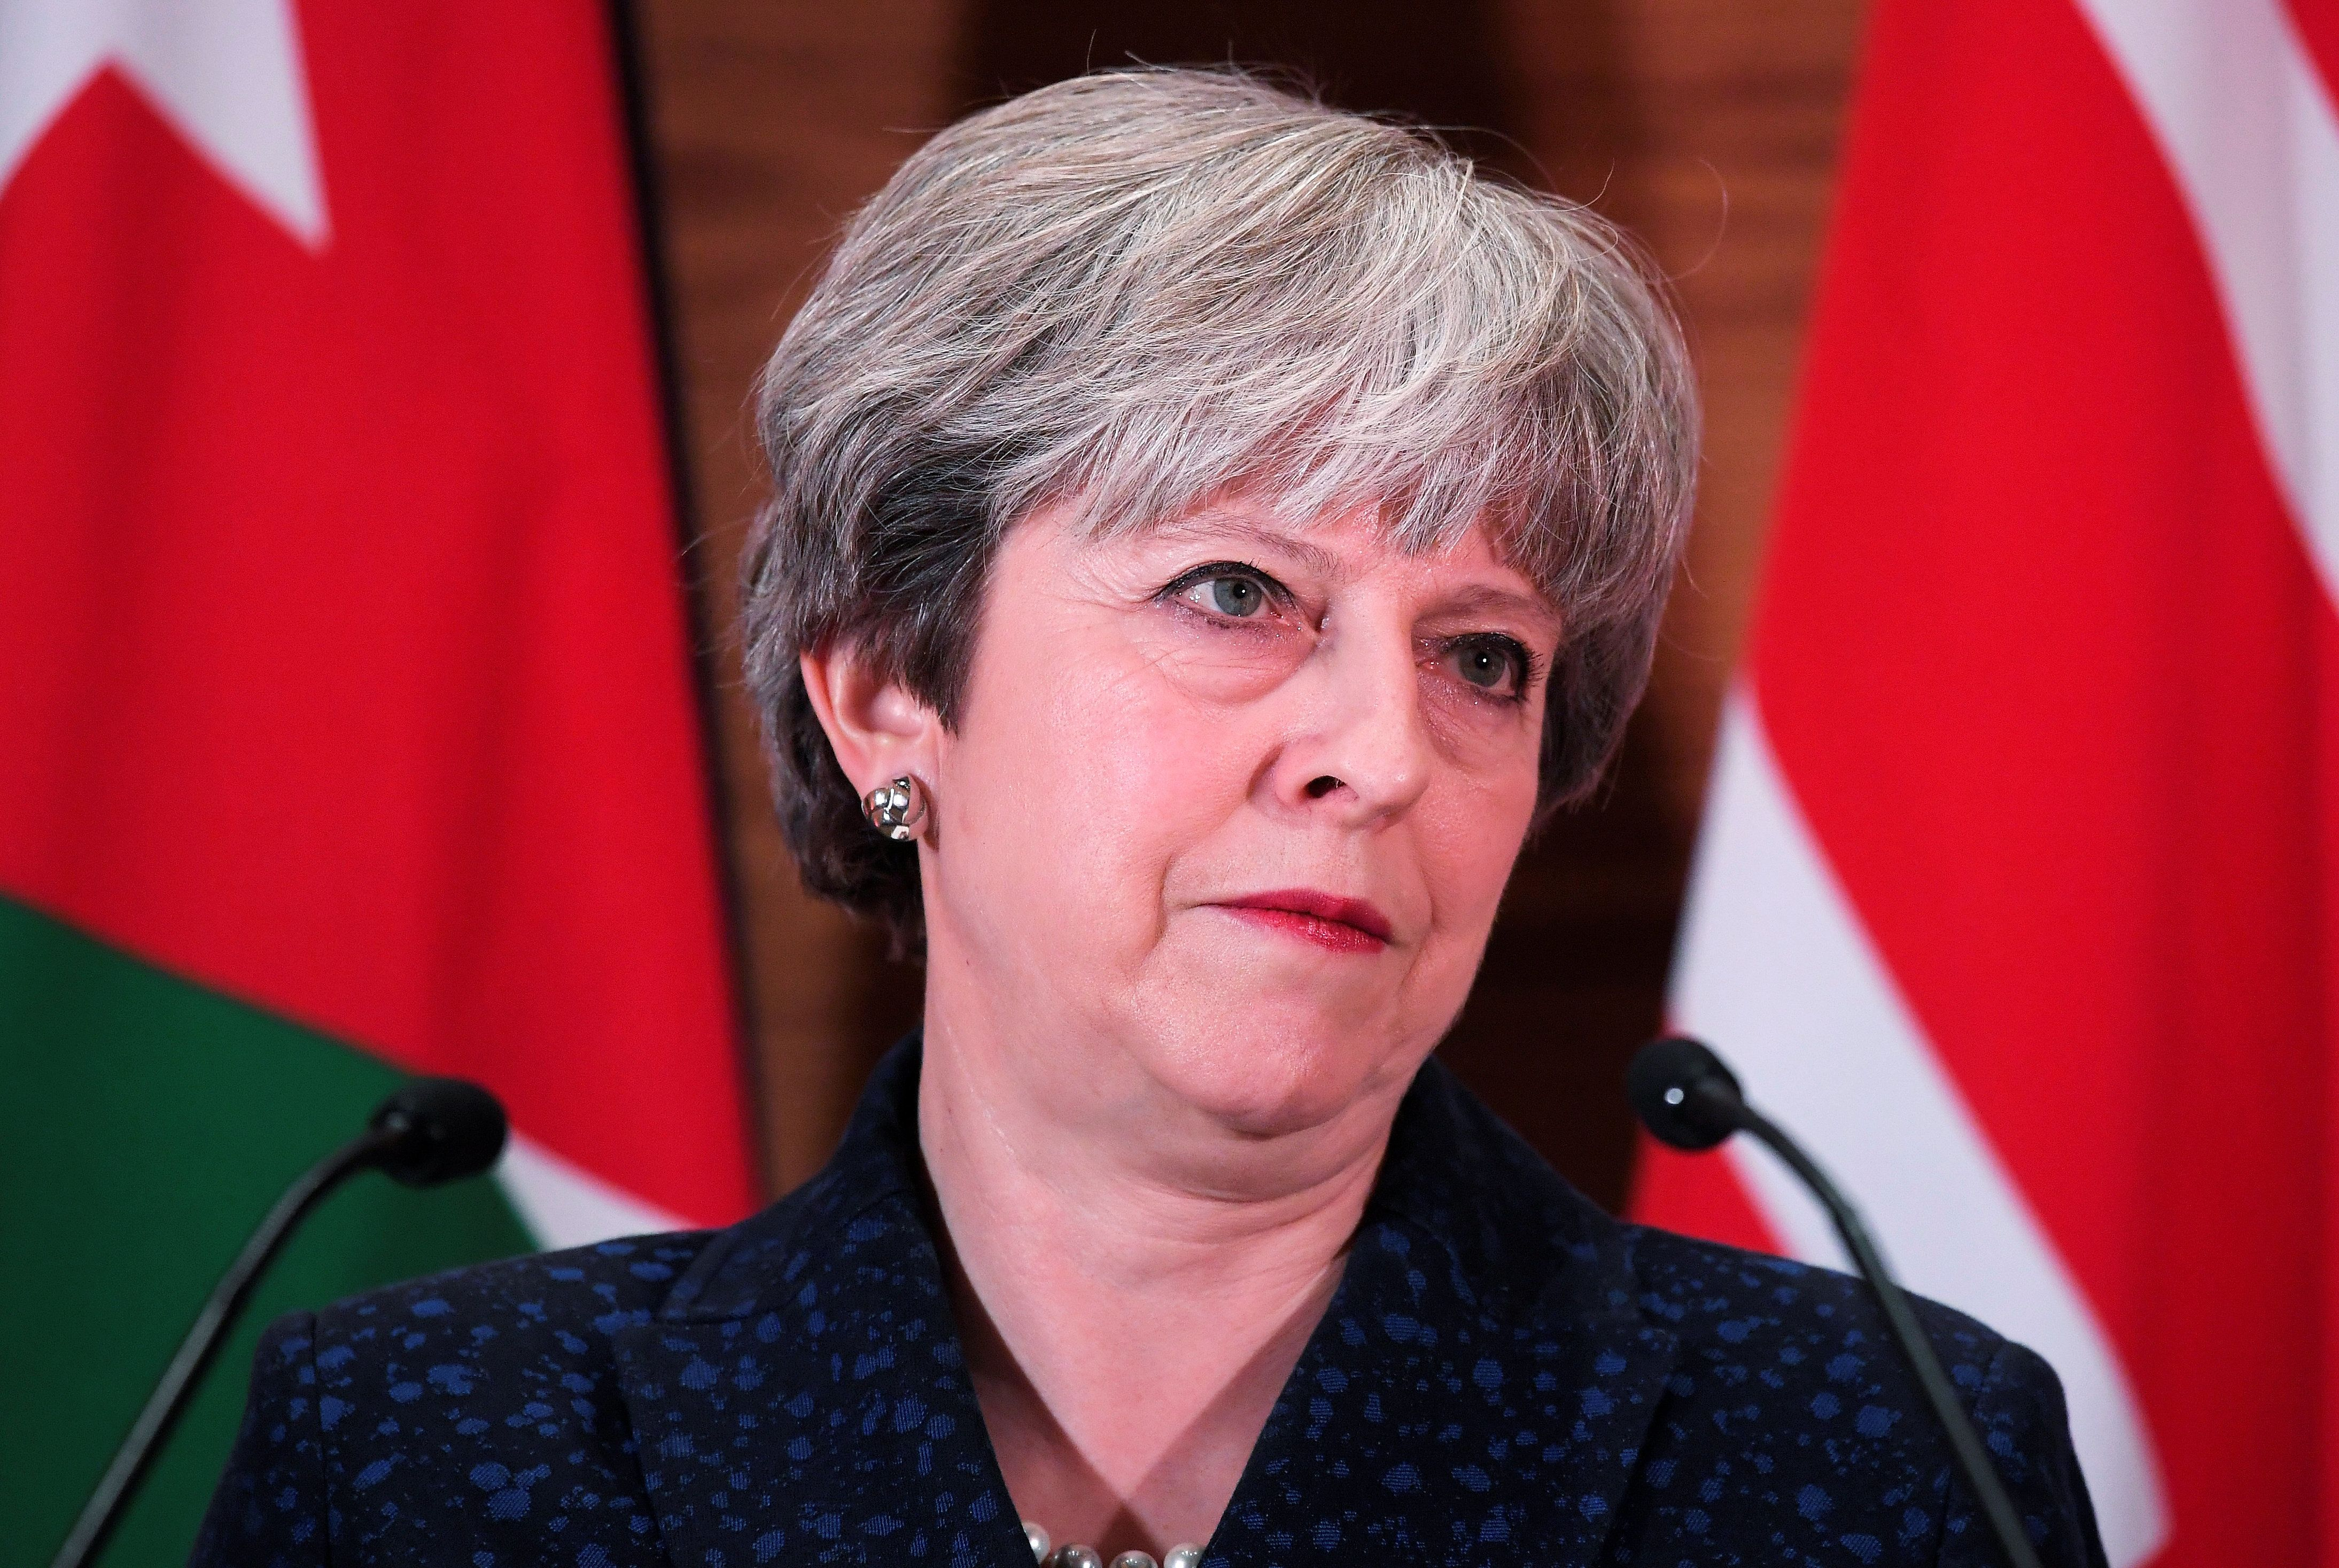 Theresa May renewed her criticism of Donald Trump after the US president shared anti-Muslim videosposted...